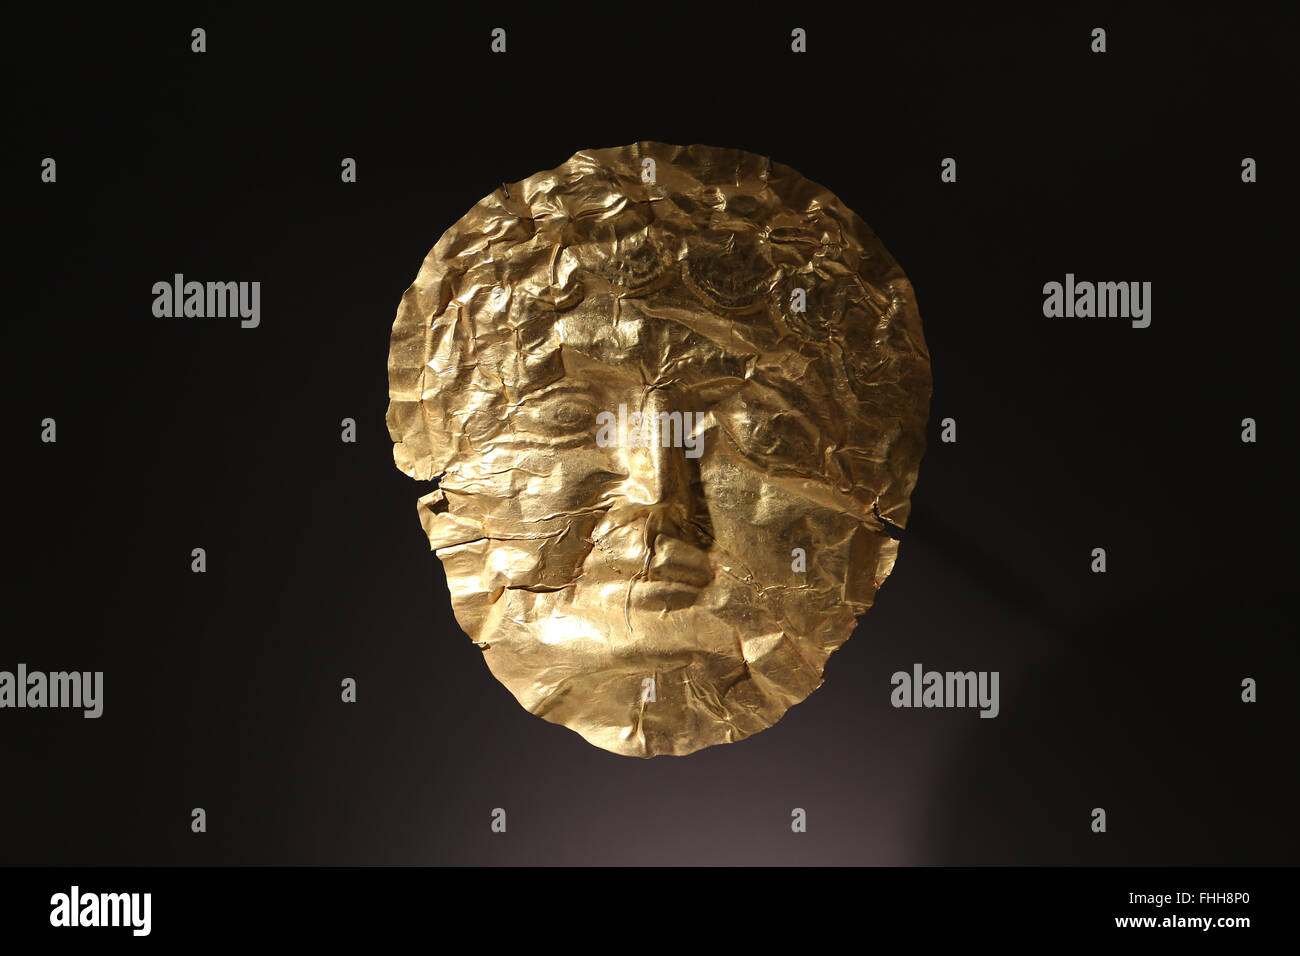 Funerary practices. Eastern provinces of Roman Empire. Near Eastern. Gold mask. Levantine tombs. Imperial period. Stock Photo